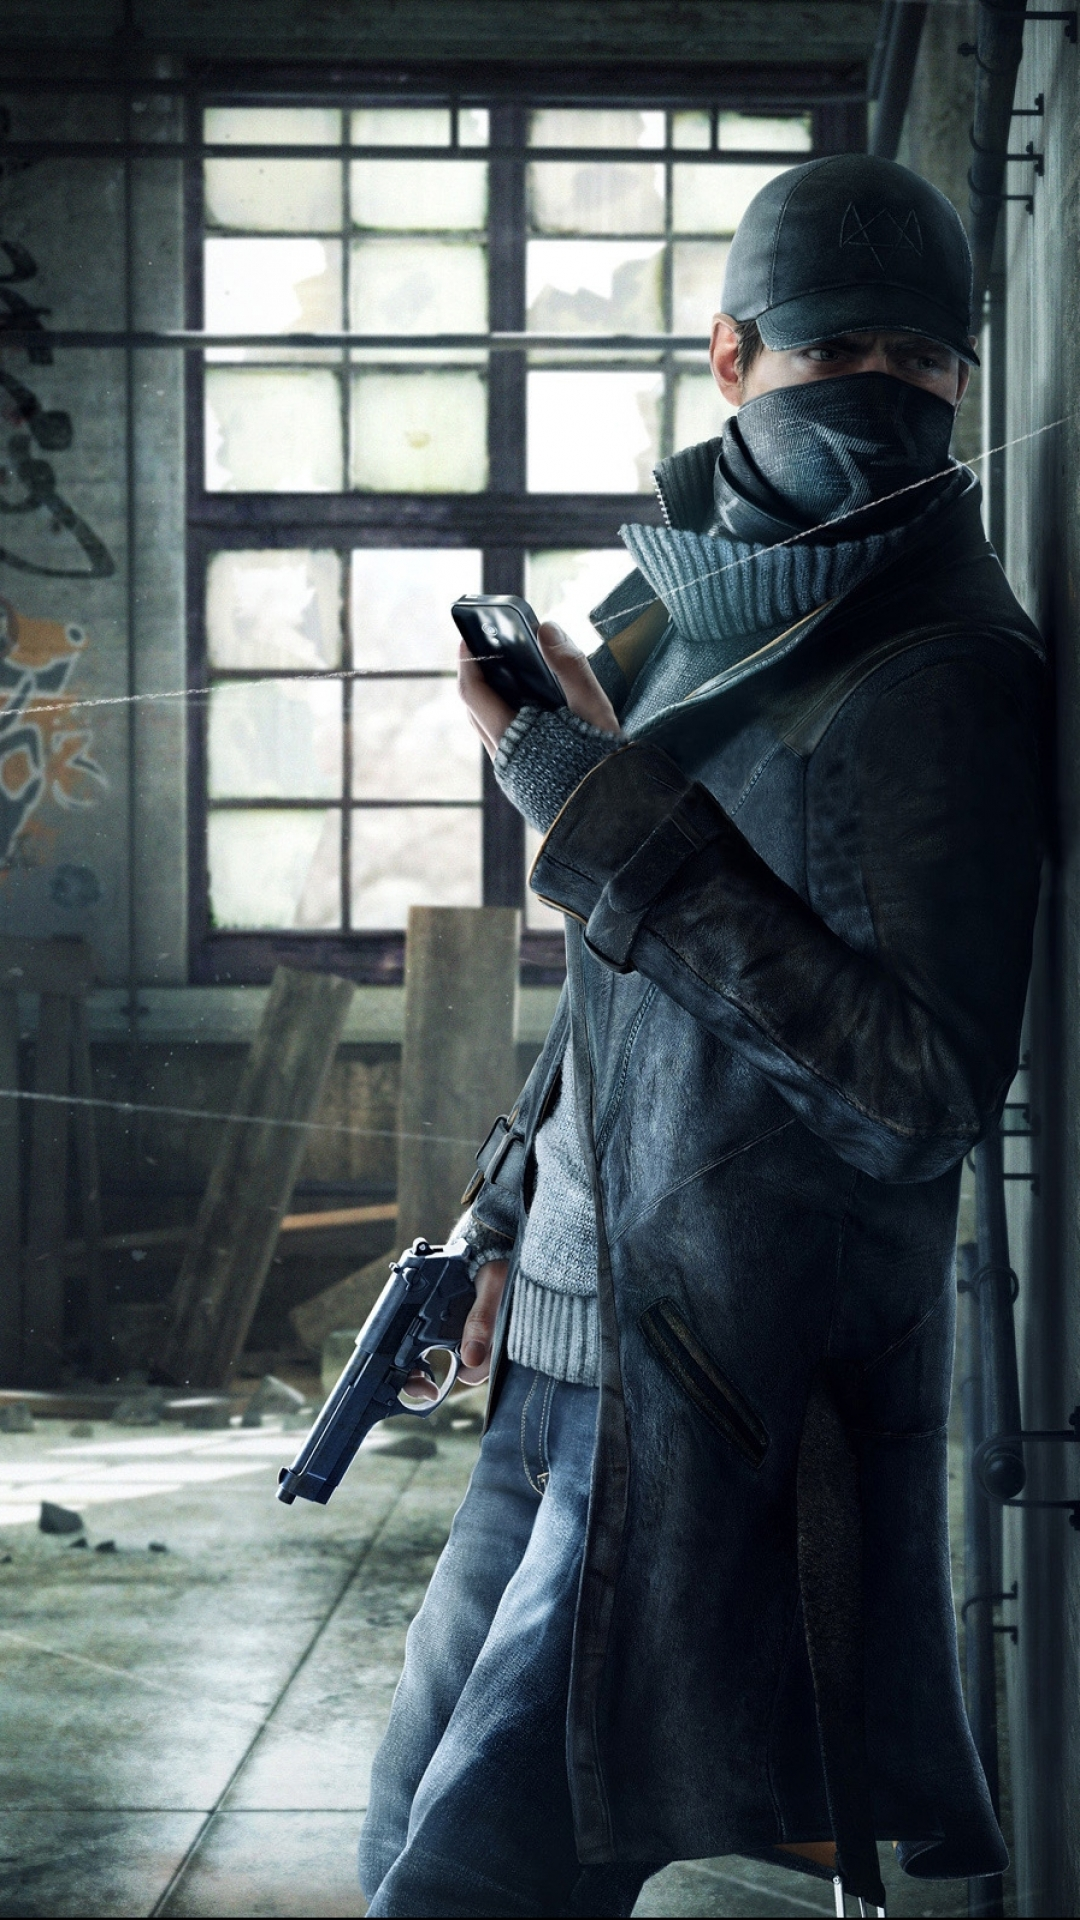 Watch dogs wallpaper phone